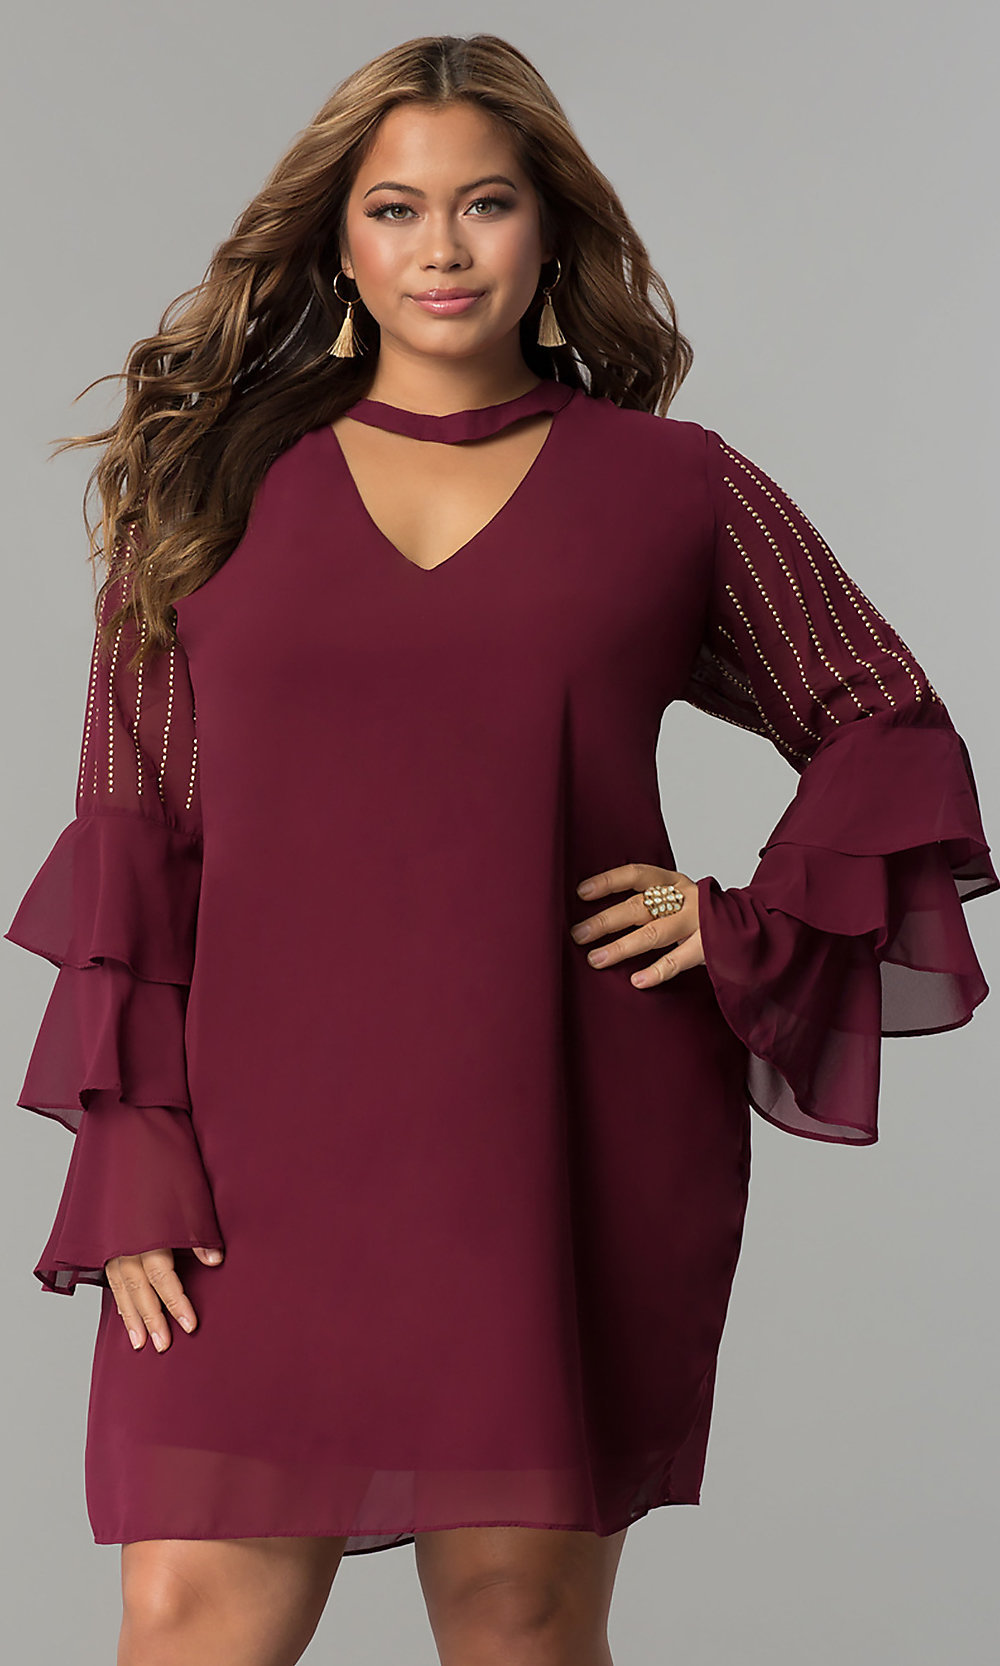 Sleeved Short Chiffon Plus-size Party Dress - PromGirl